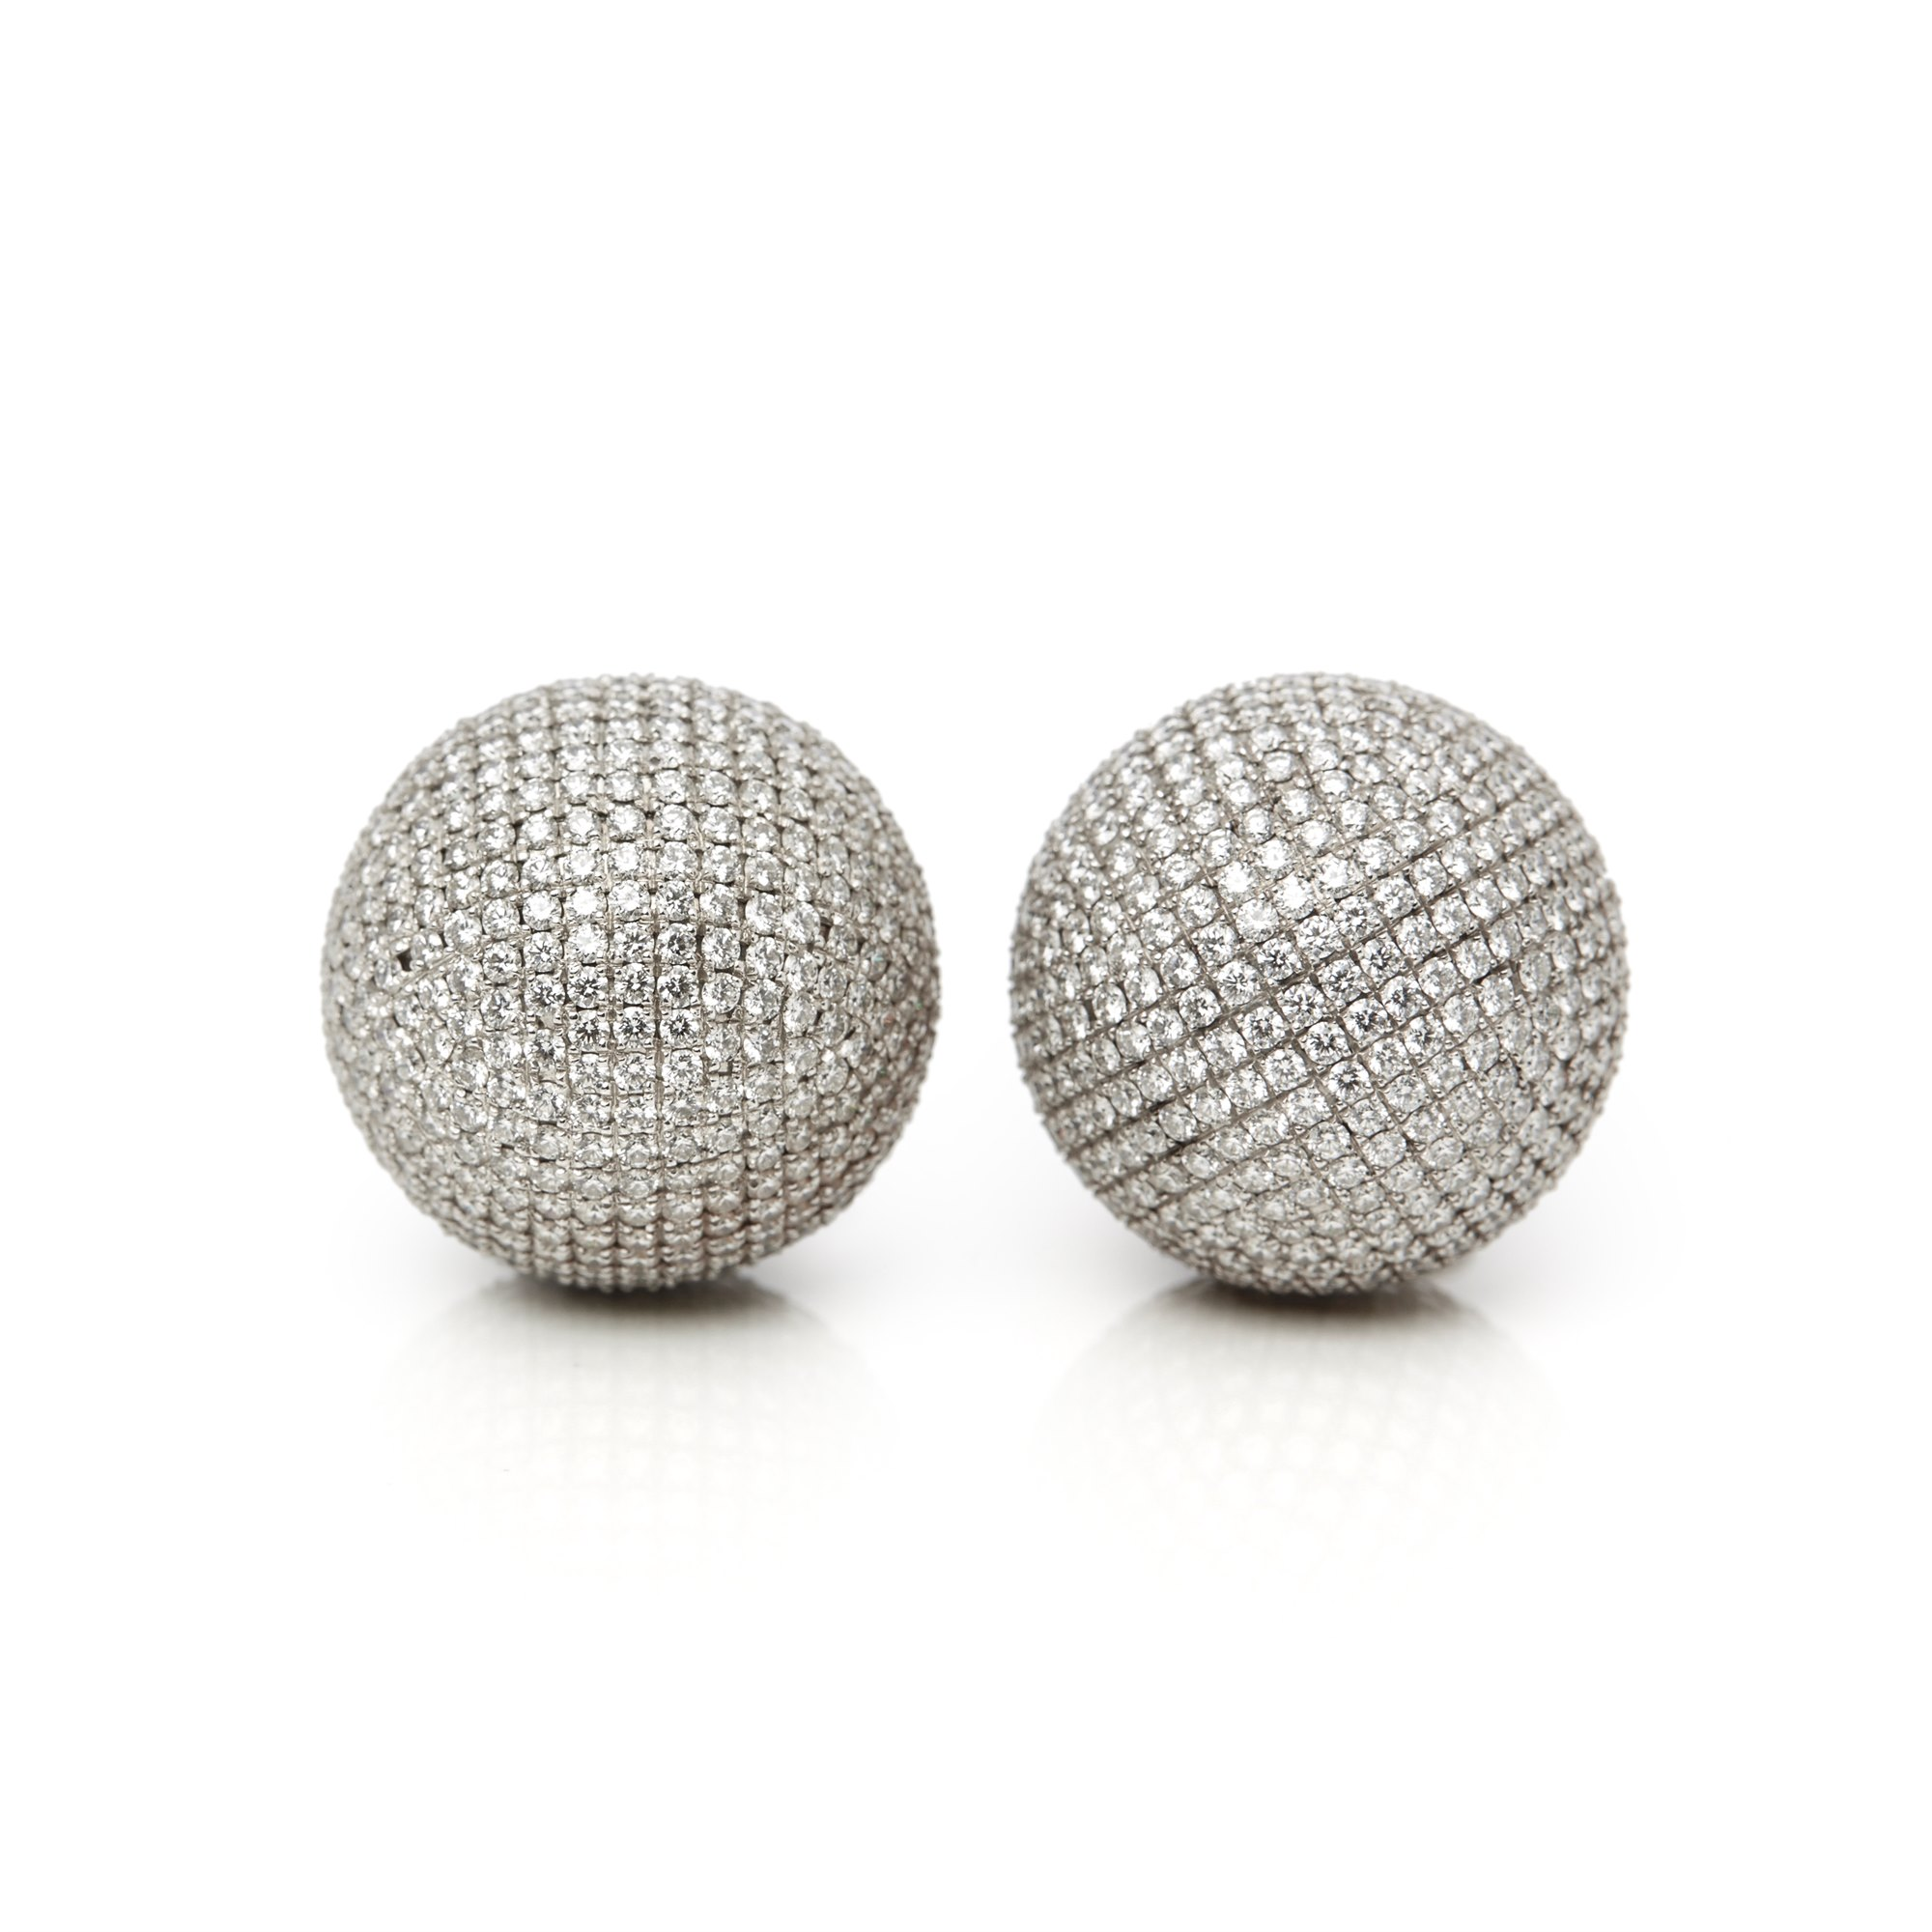 Bottega Veneta 18k White Gold Diamond Sfera Drop Earrings